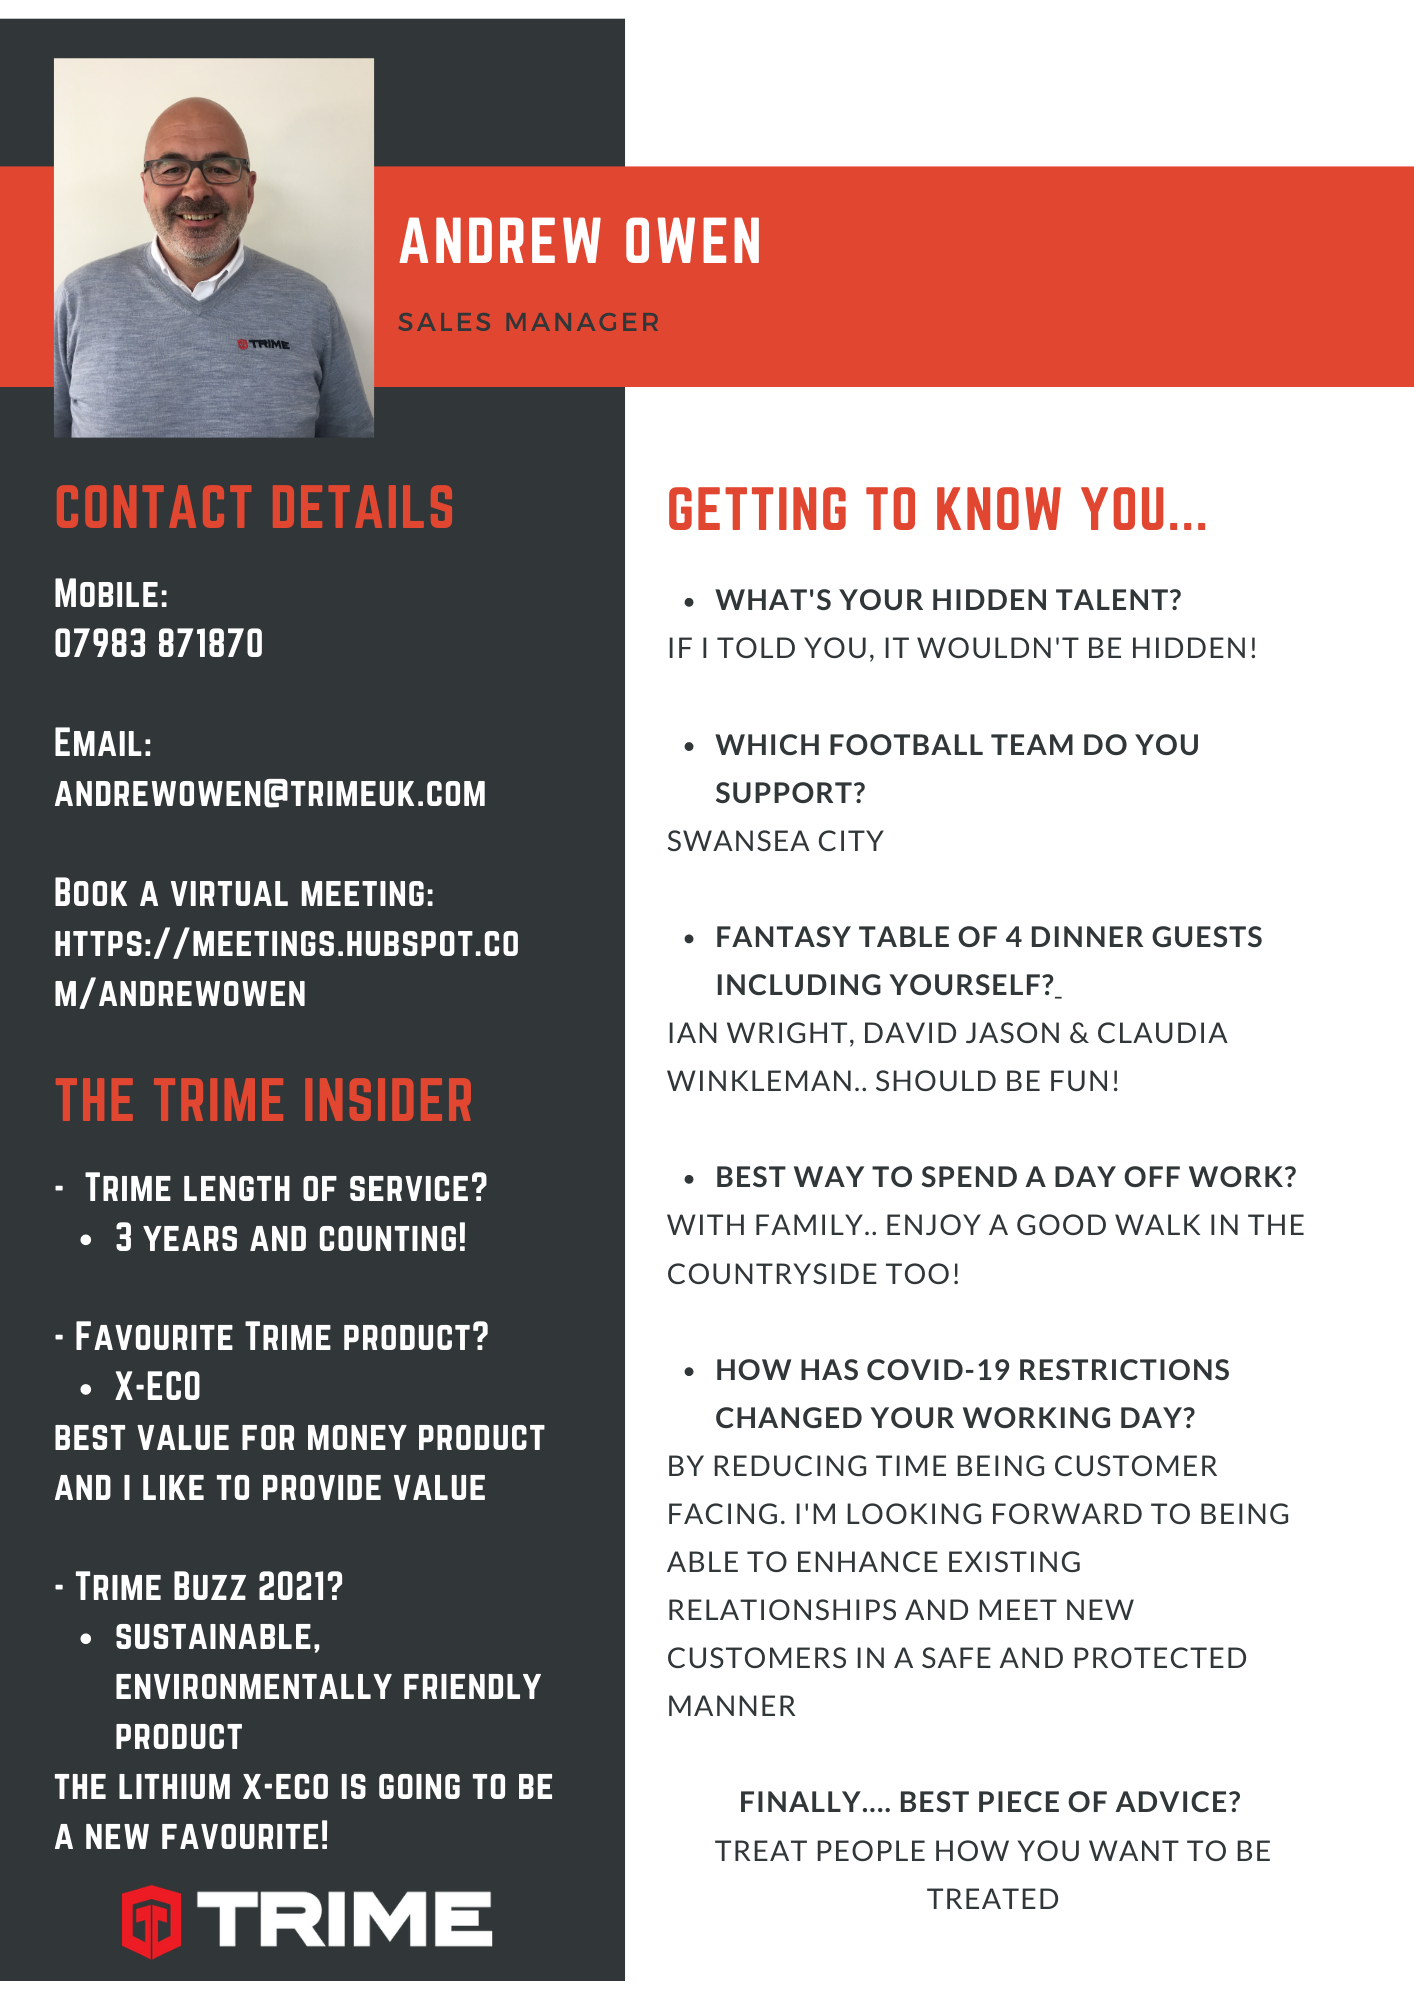 Trime UK launch the new series of getting to know you..